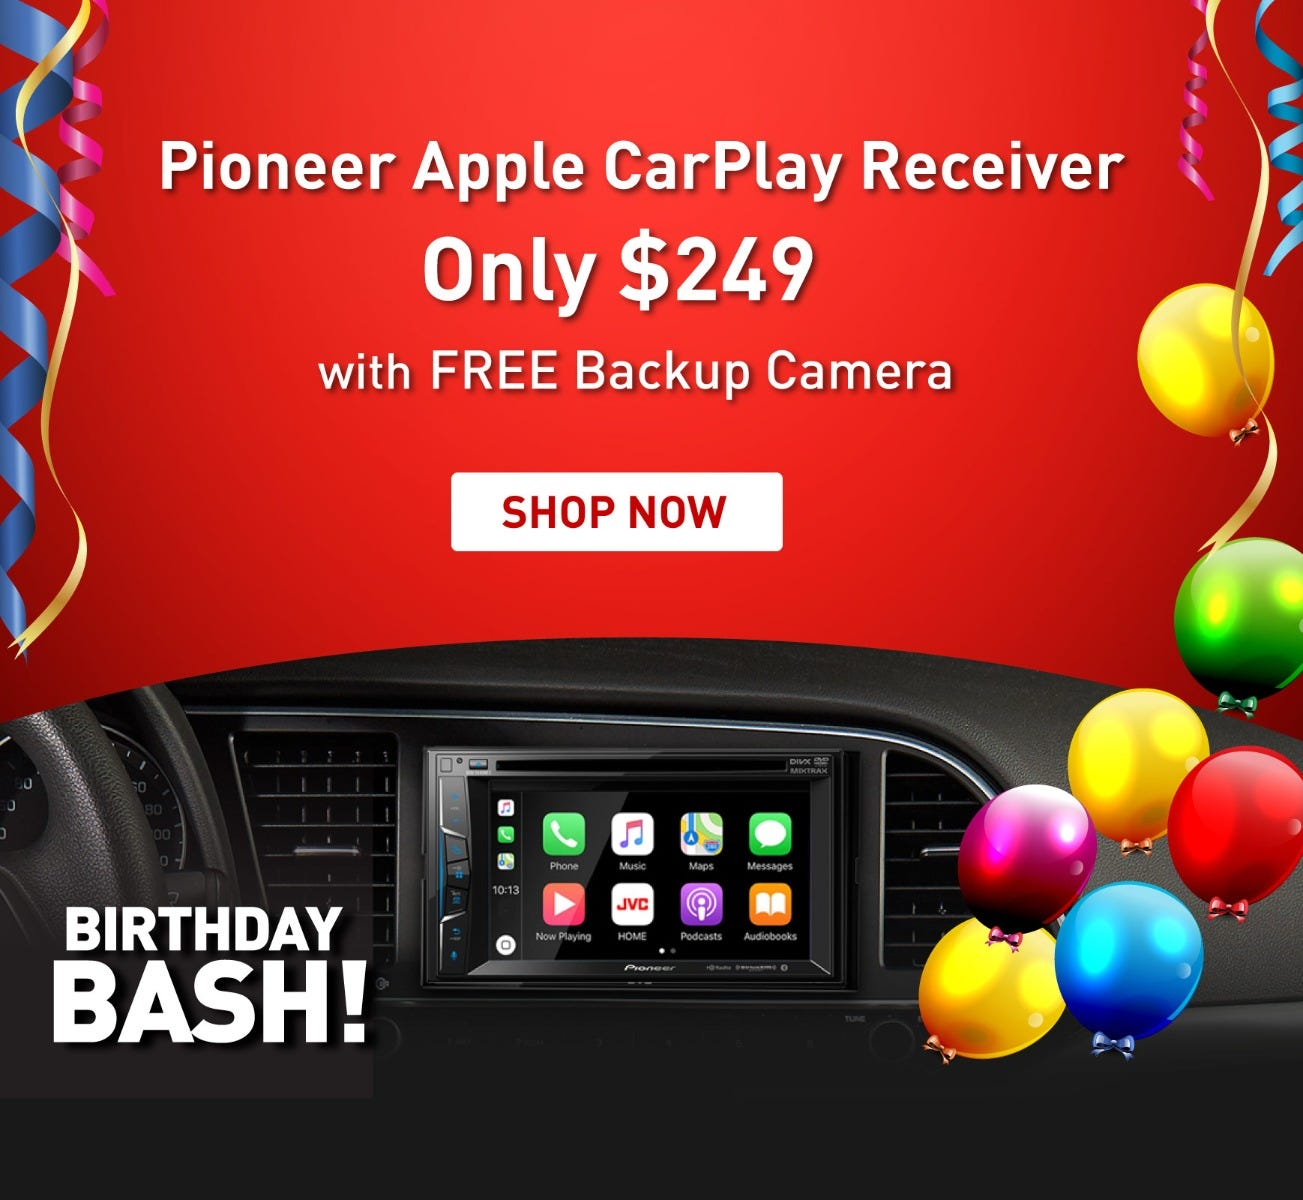 Birthday Bash sale PIONEER CarPlay